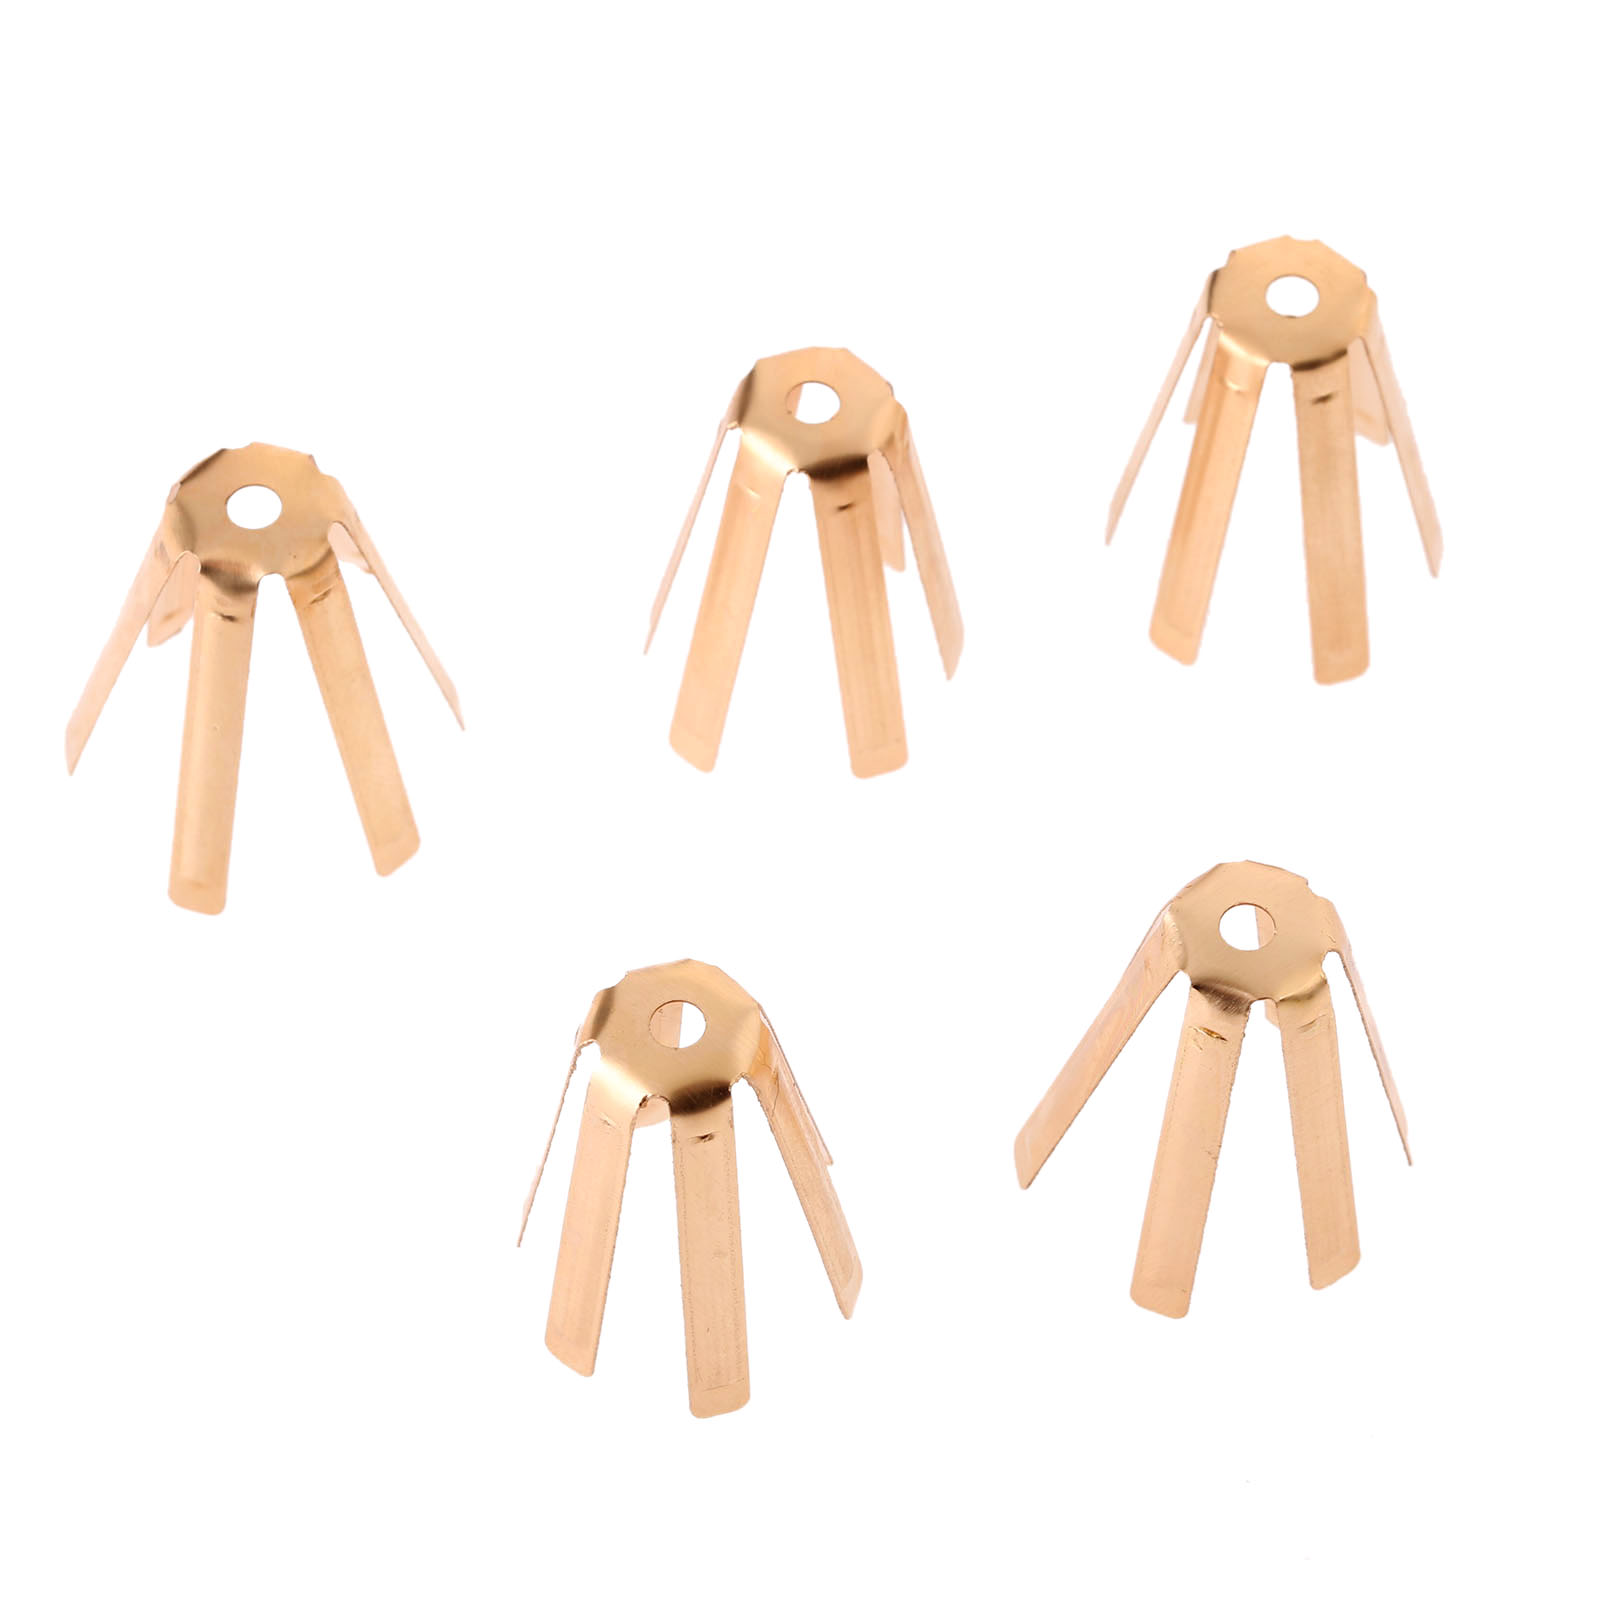 Image 5 - gohantee 10Pcs Golf Brass Adapter Spacer Shims Model 0.335 And 0.350 24mm Fit For Golf Shafts And Golf Club Heads Accessories-in Club Heads from Sports & Entertainment